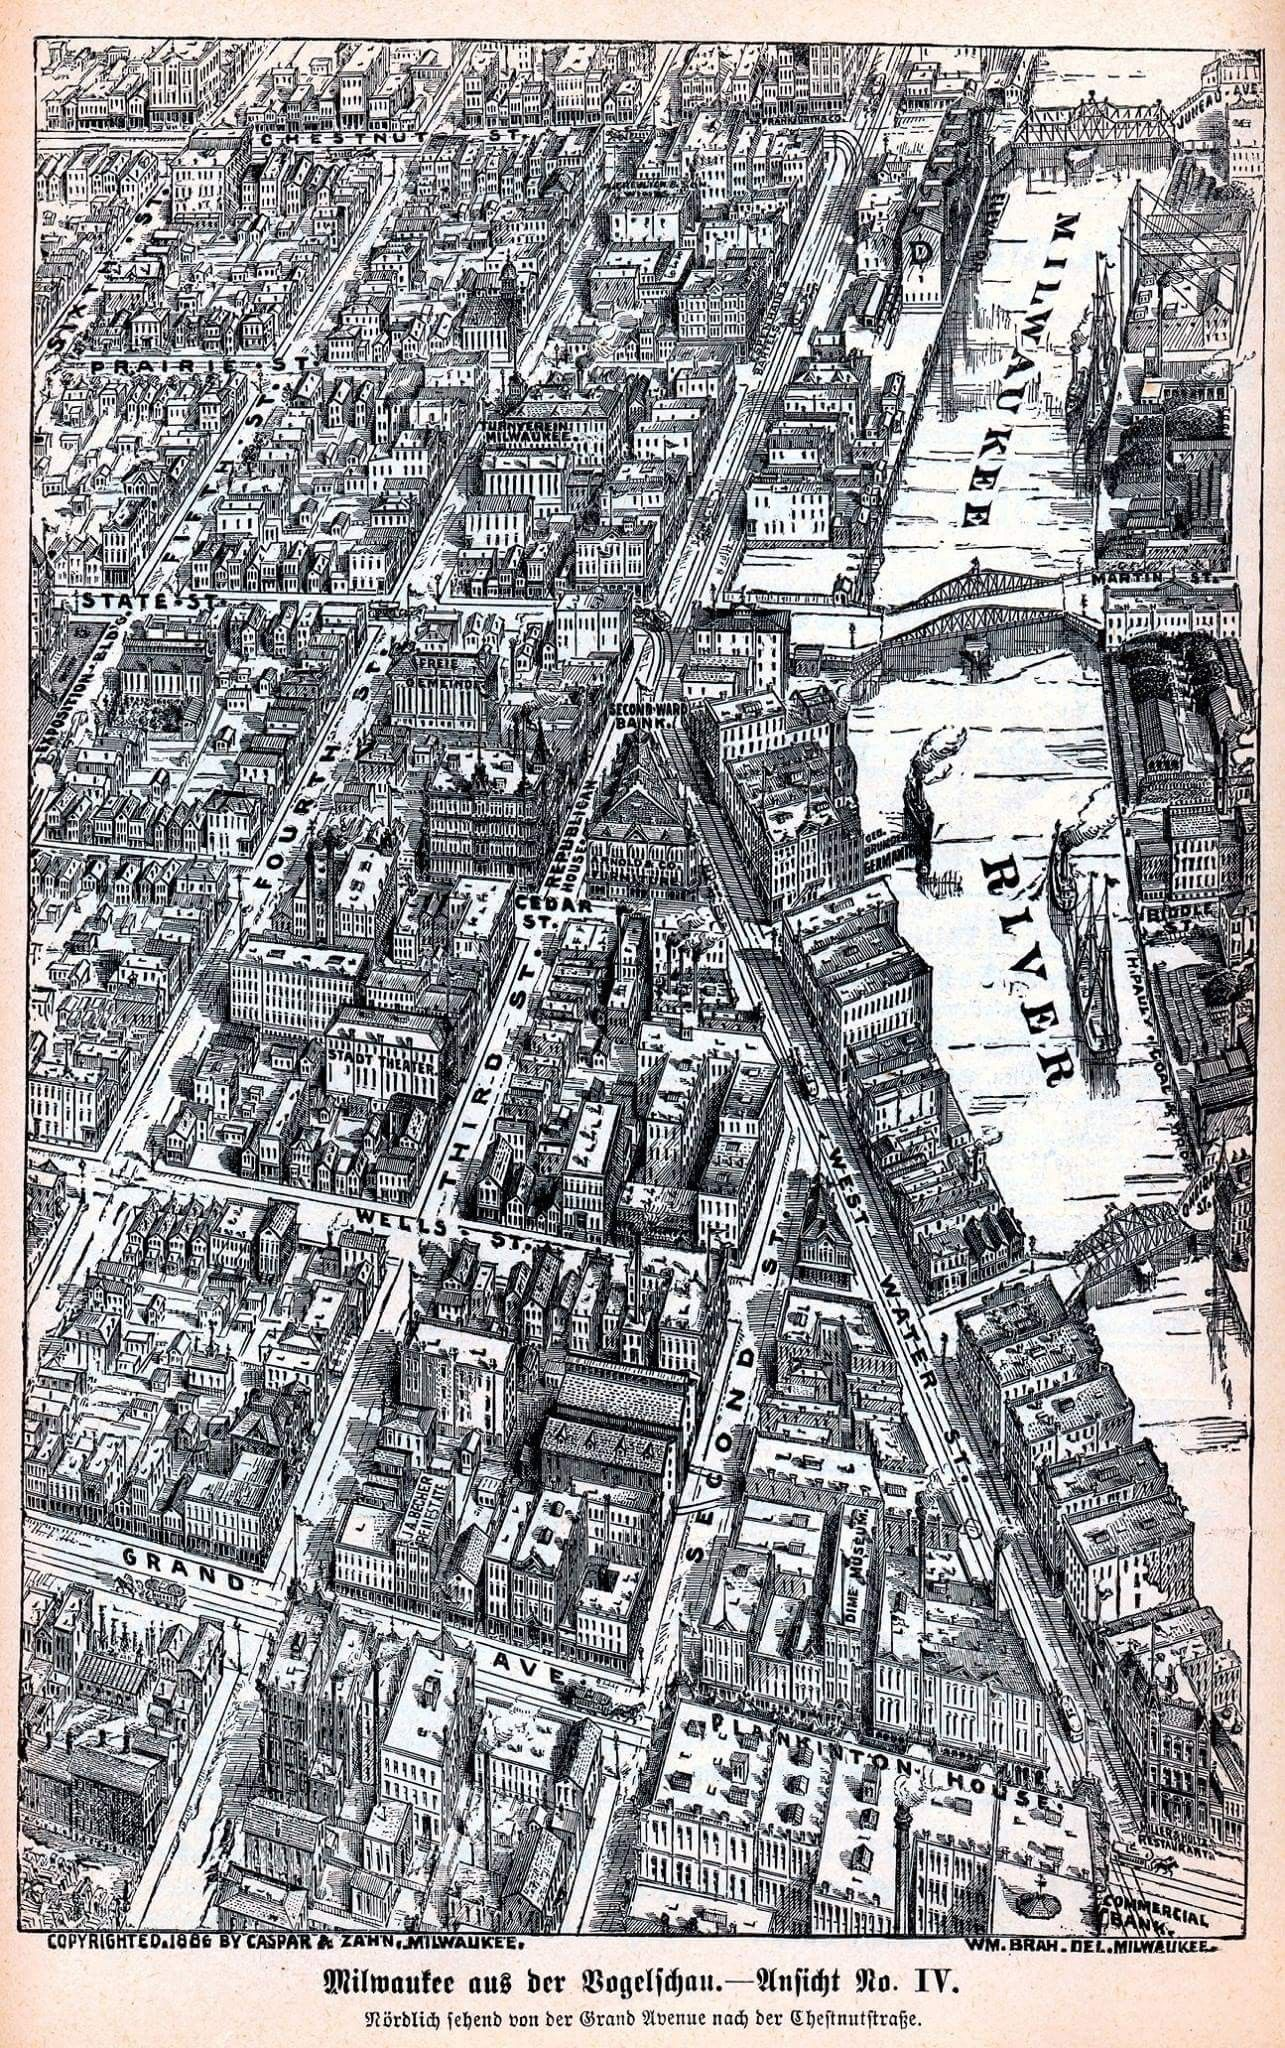 From Karl Bandow Maps